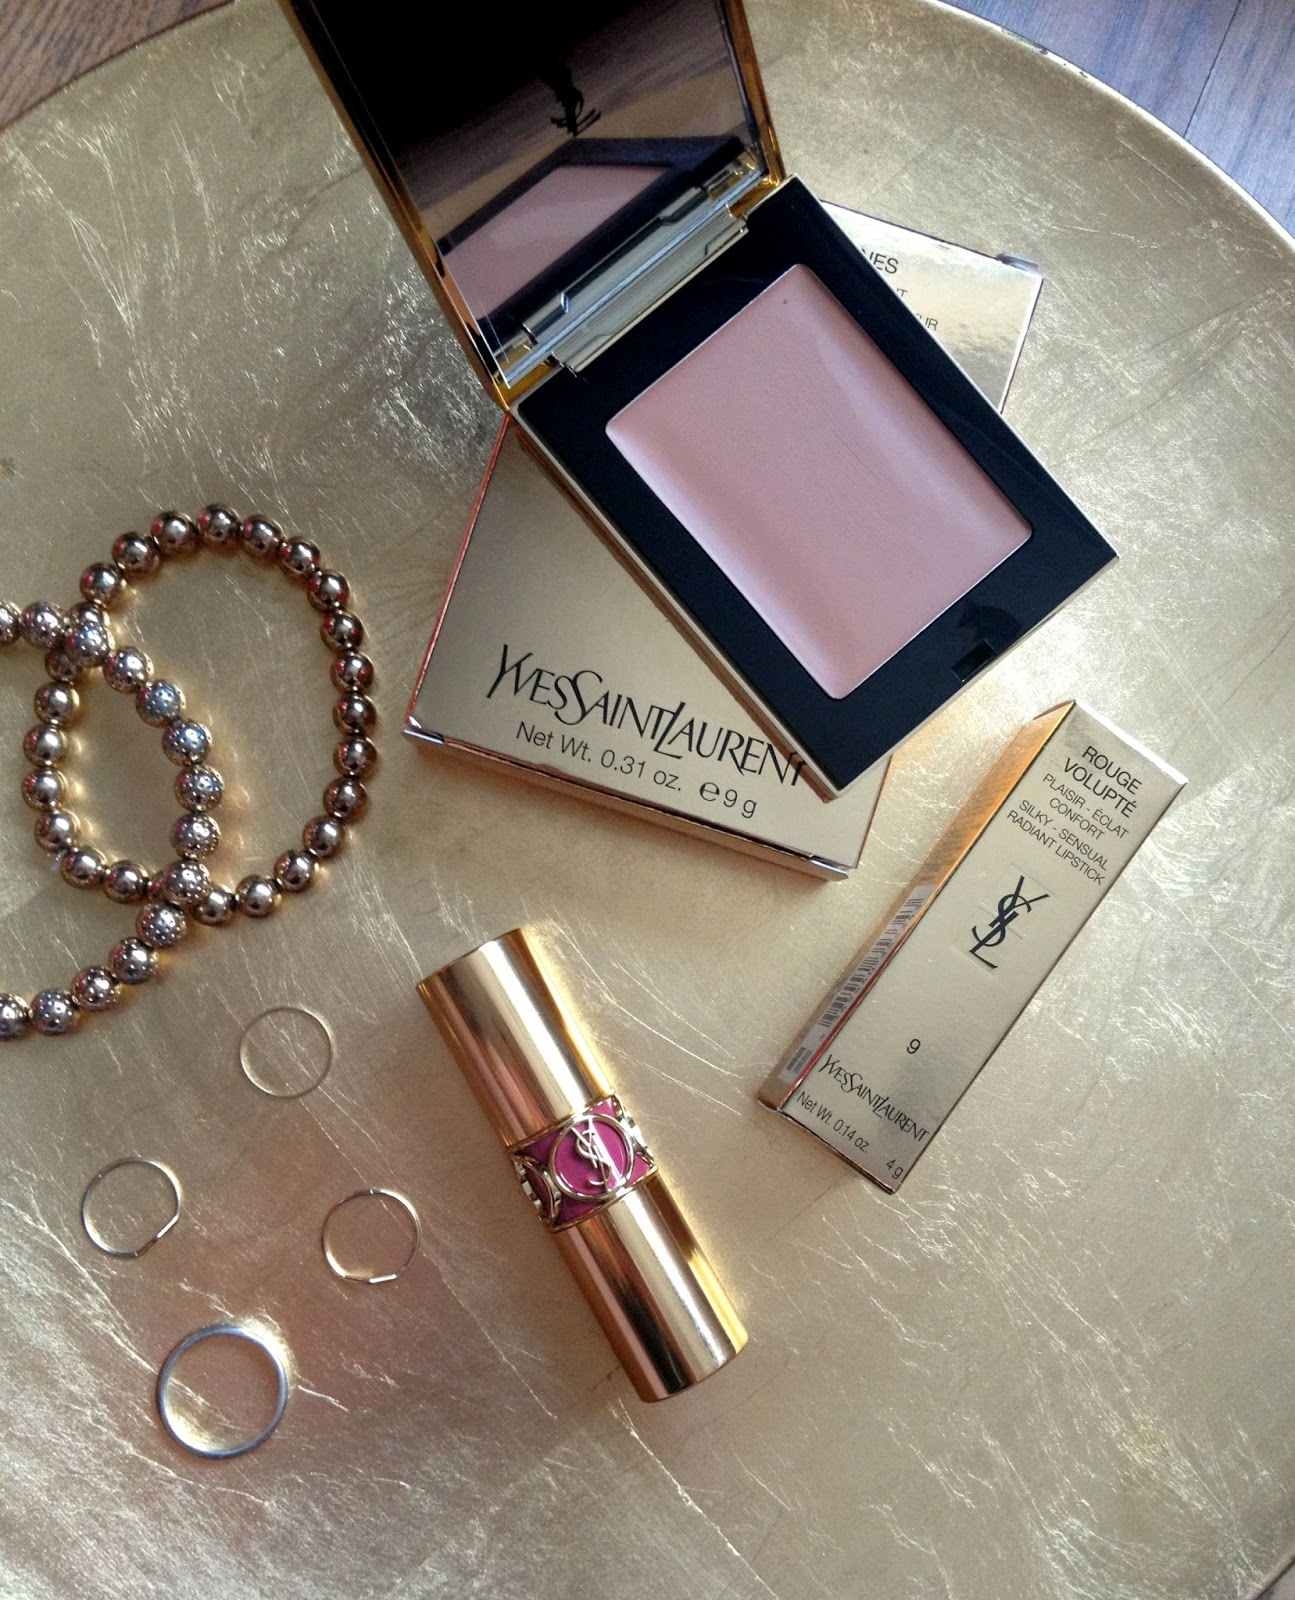 YSL make up haul